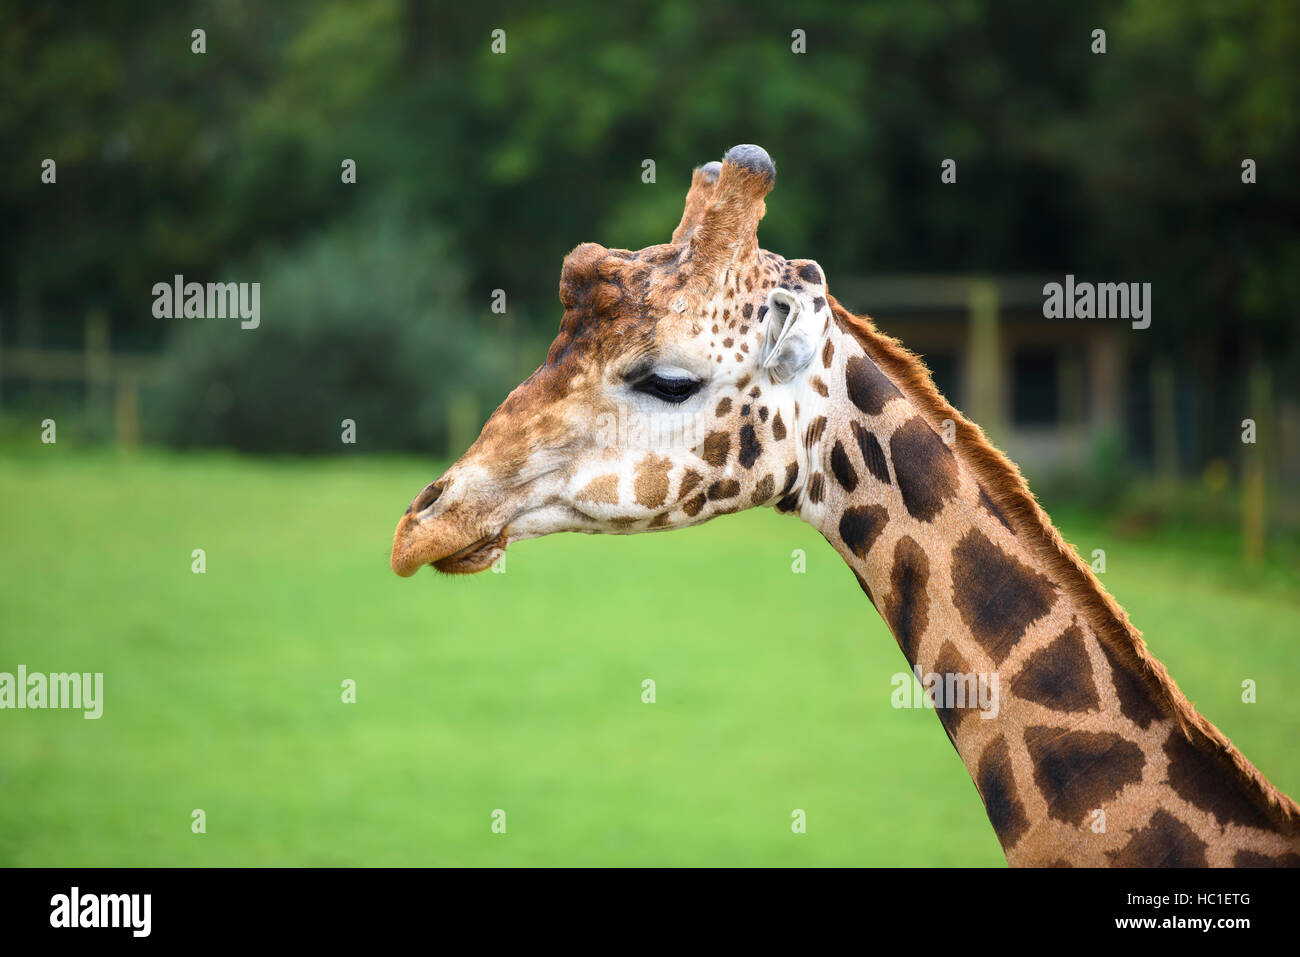 Girafe Up Close and Personal Photo Stock